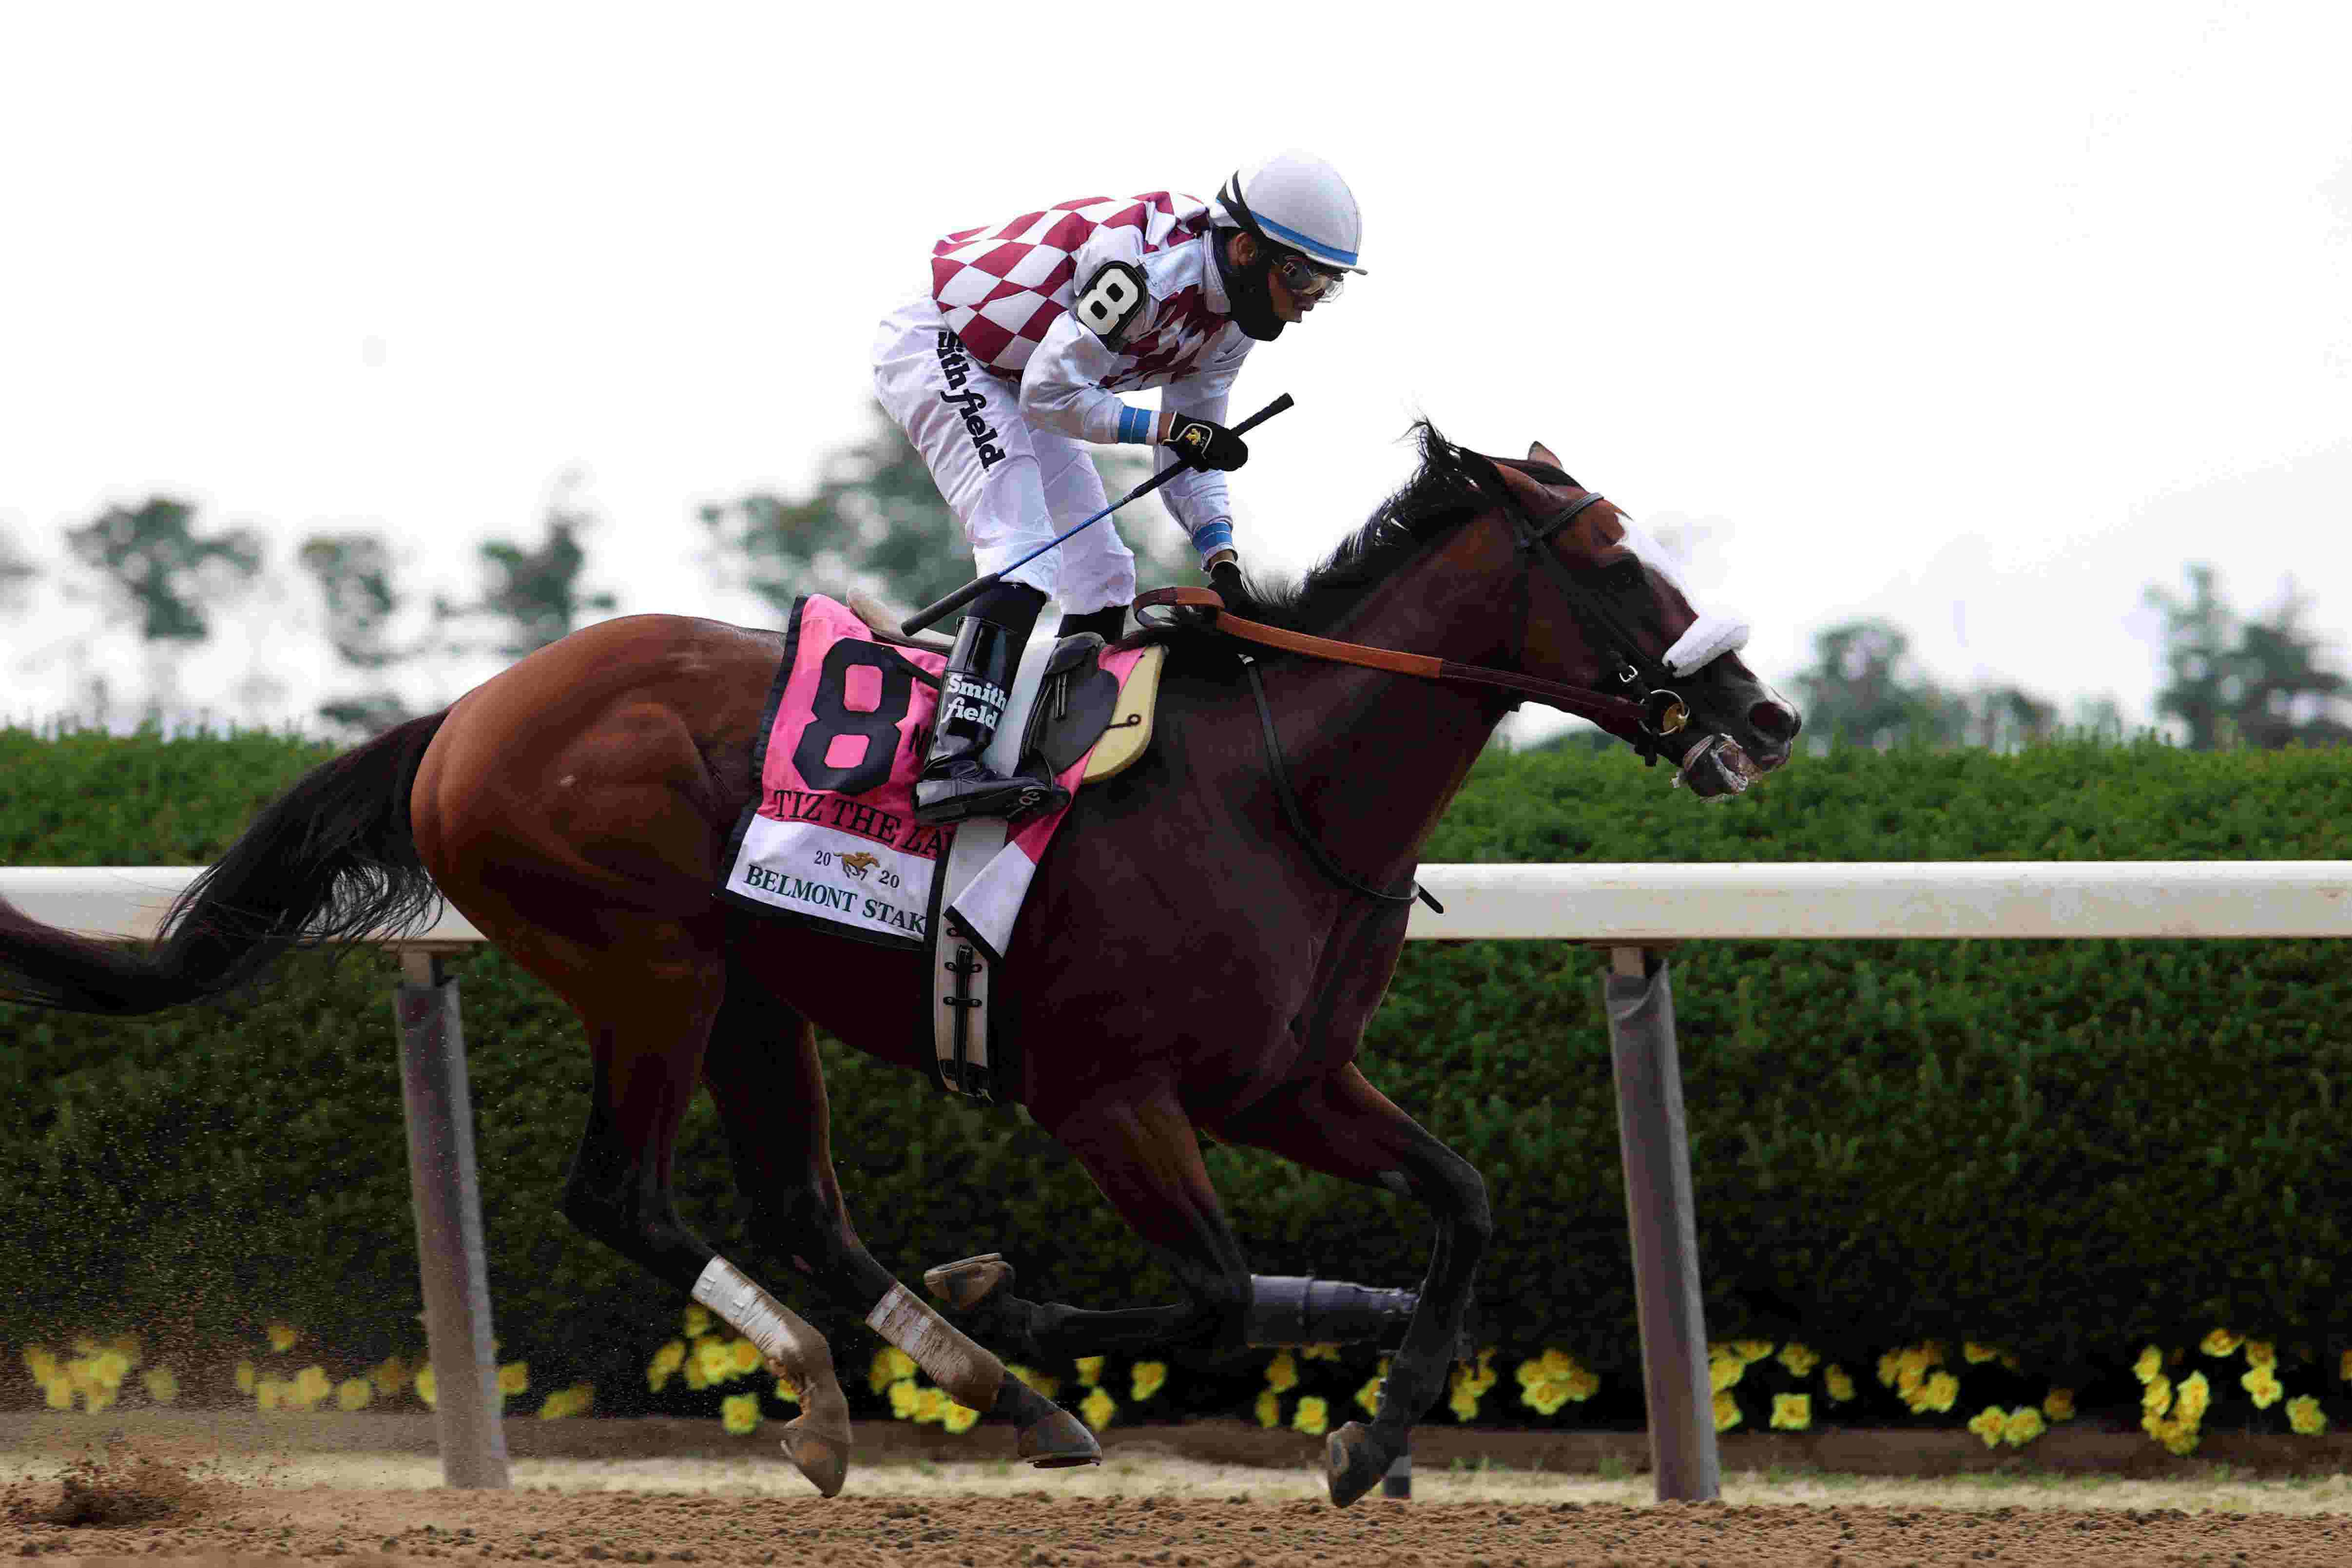 Will Tiz the Law win the Kentucky Derby